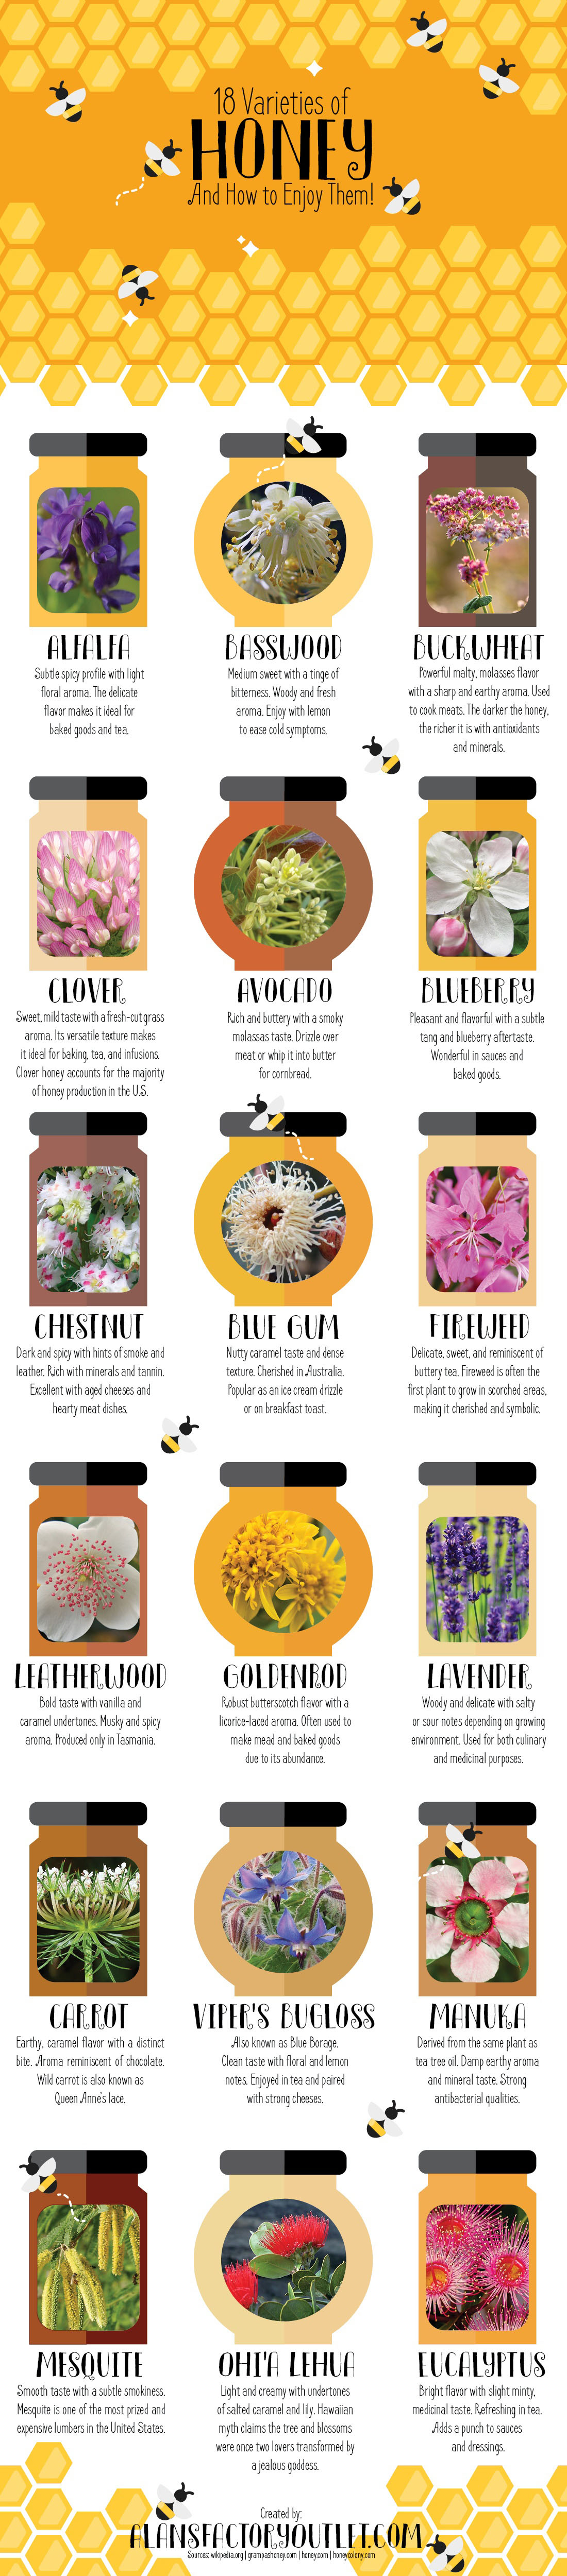 18 Varieties of Honey and How to Enjoy Them